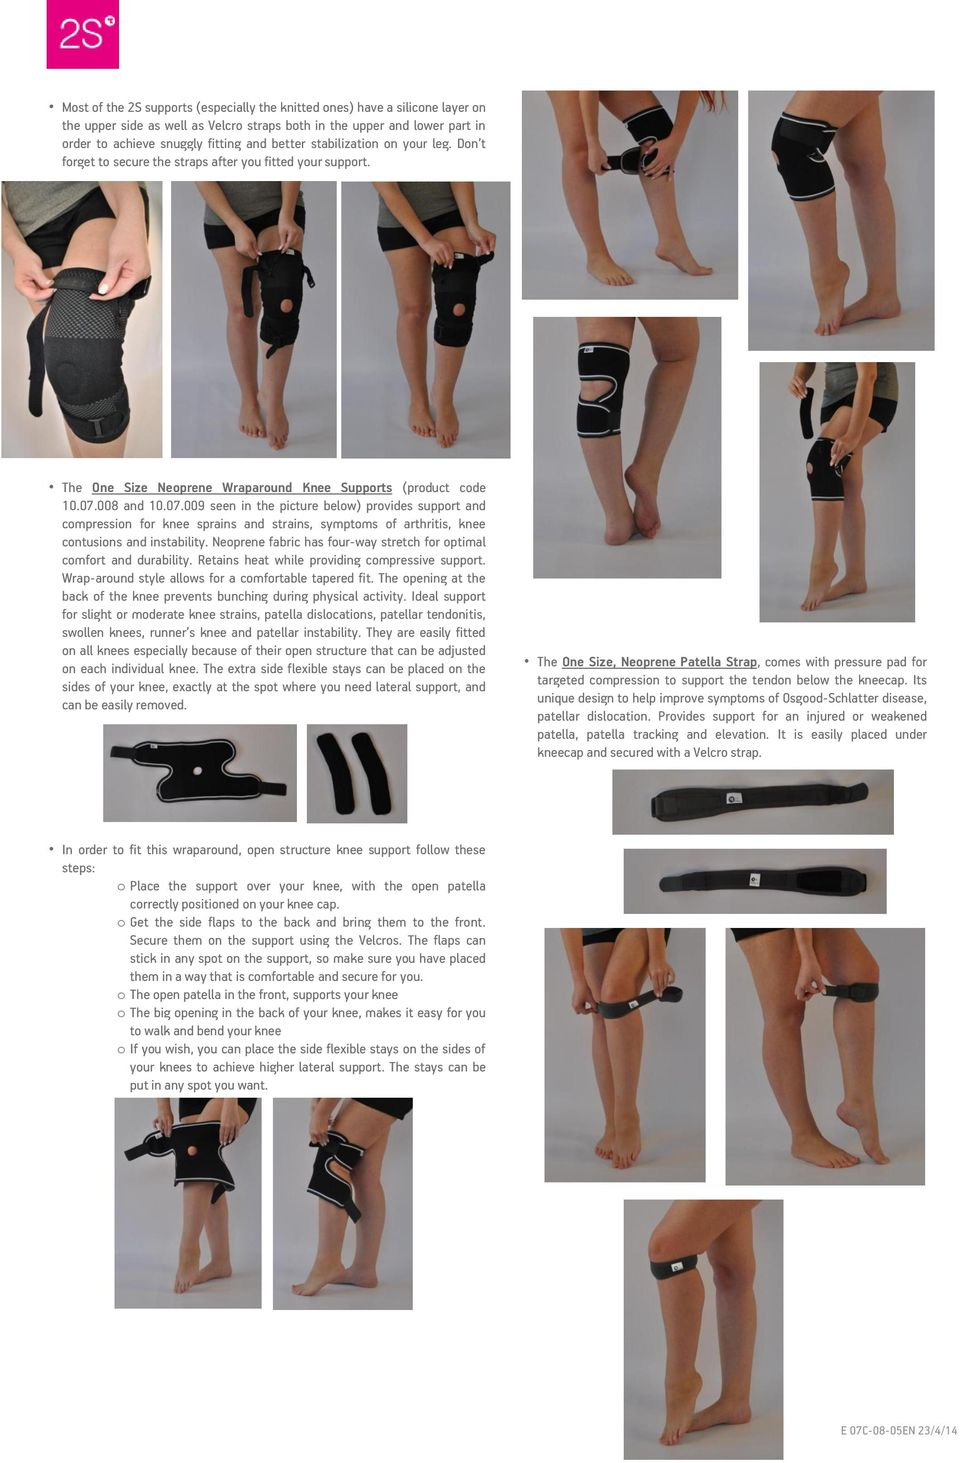 008 and 10.07.009 seen in the picture below) provides support and compression for knee sprains and strains, symptoms of arthritis, knee contusions and instability.